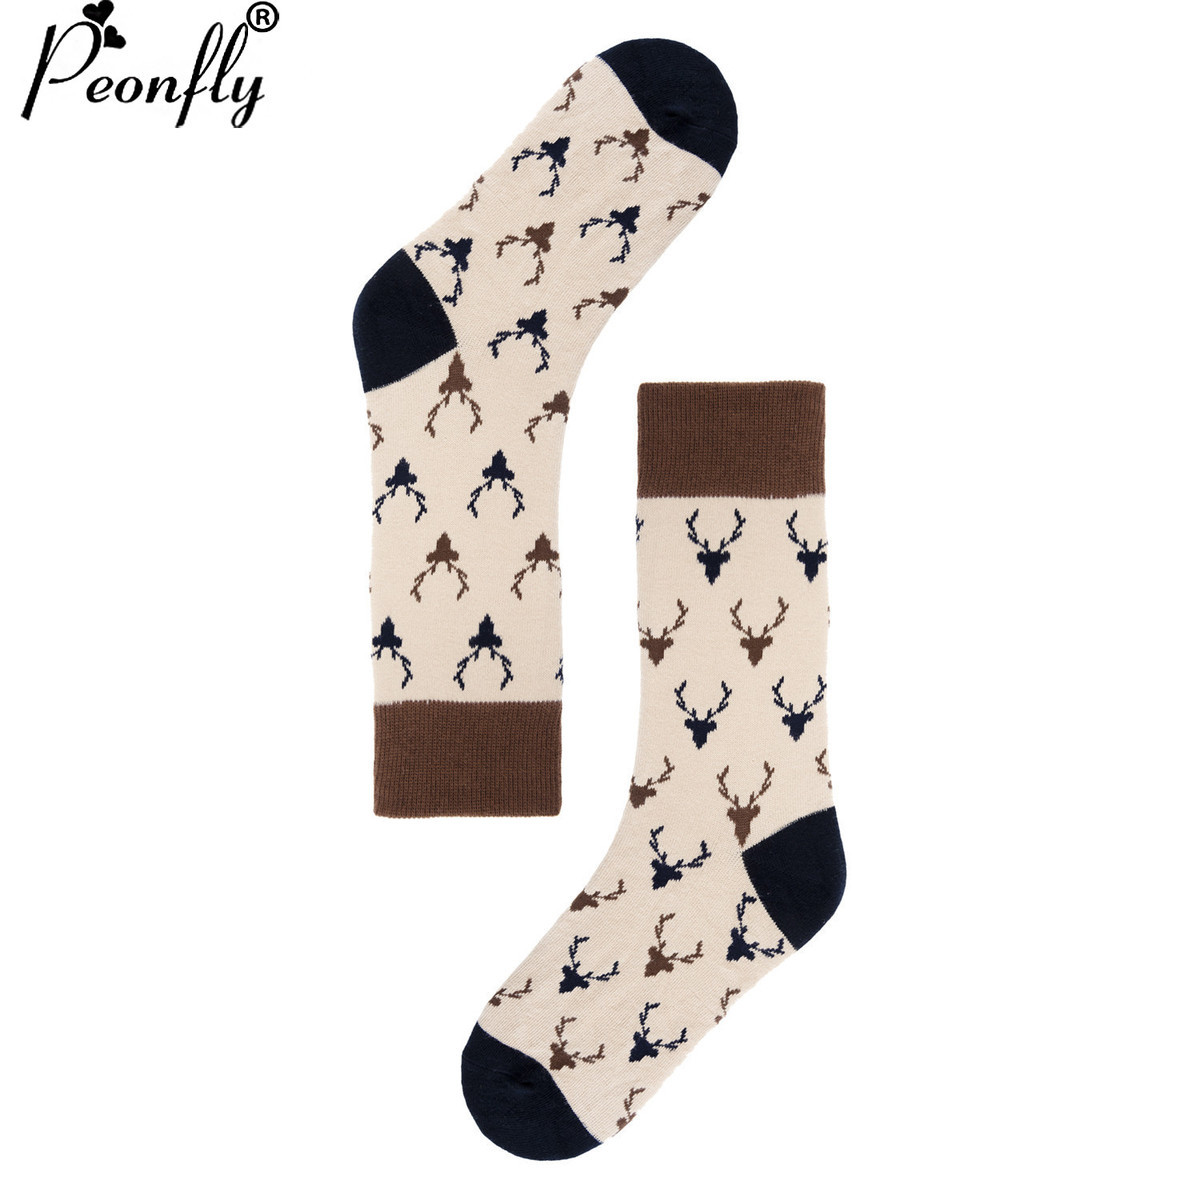 PEONFLY USA(6-10) long dress high   New Pattern Funny Socks England happy Lovers Socks Male Full Cotton